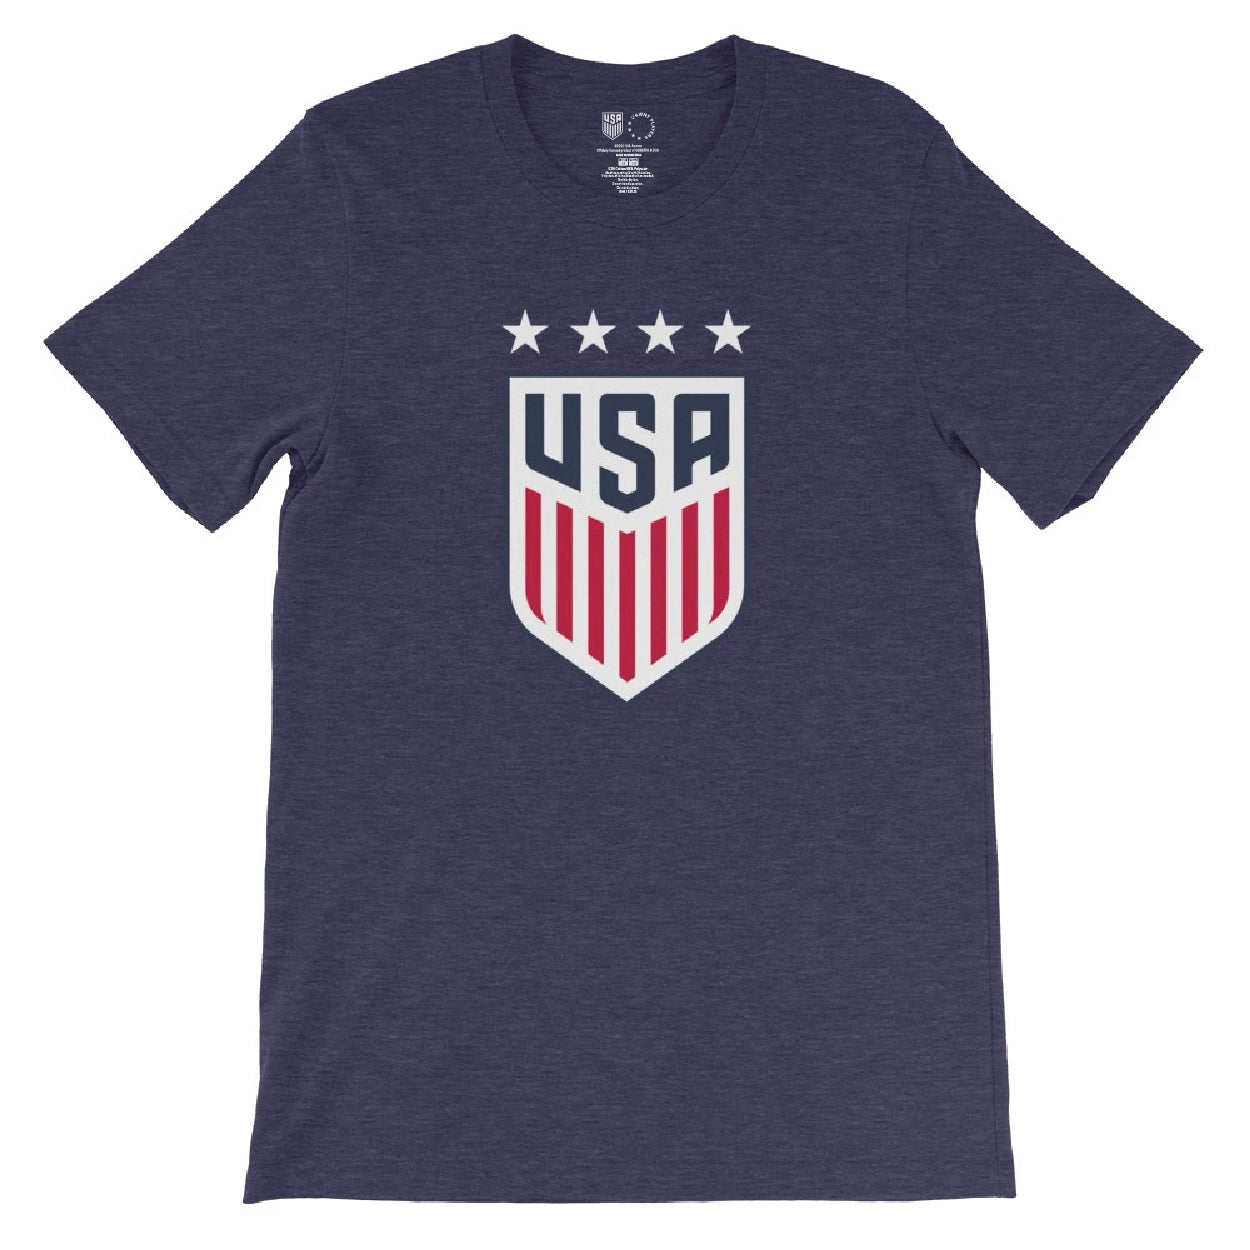 Briana Scurry 1999 USWNT 4 Star T-Shirt by Icon Sports